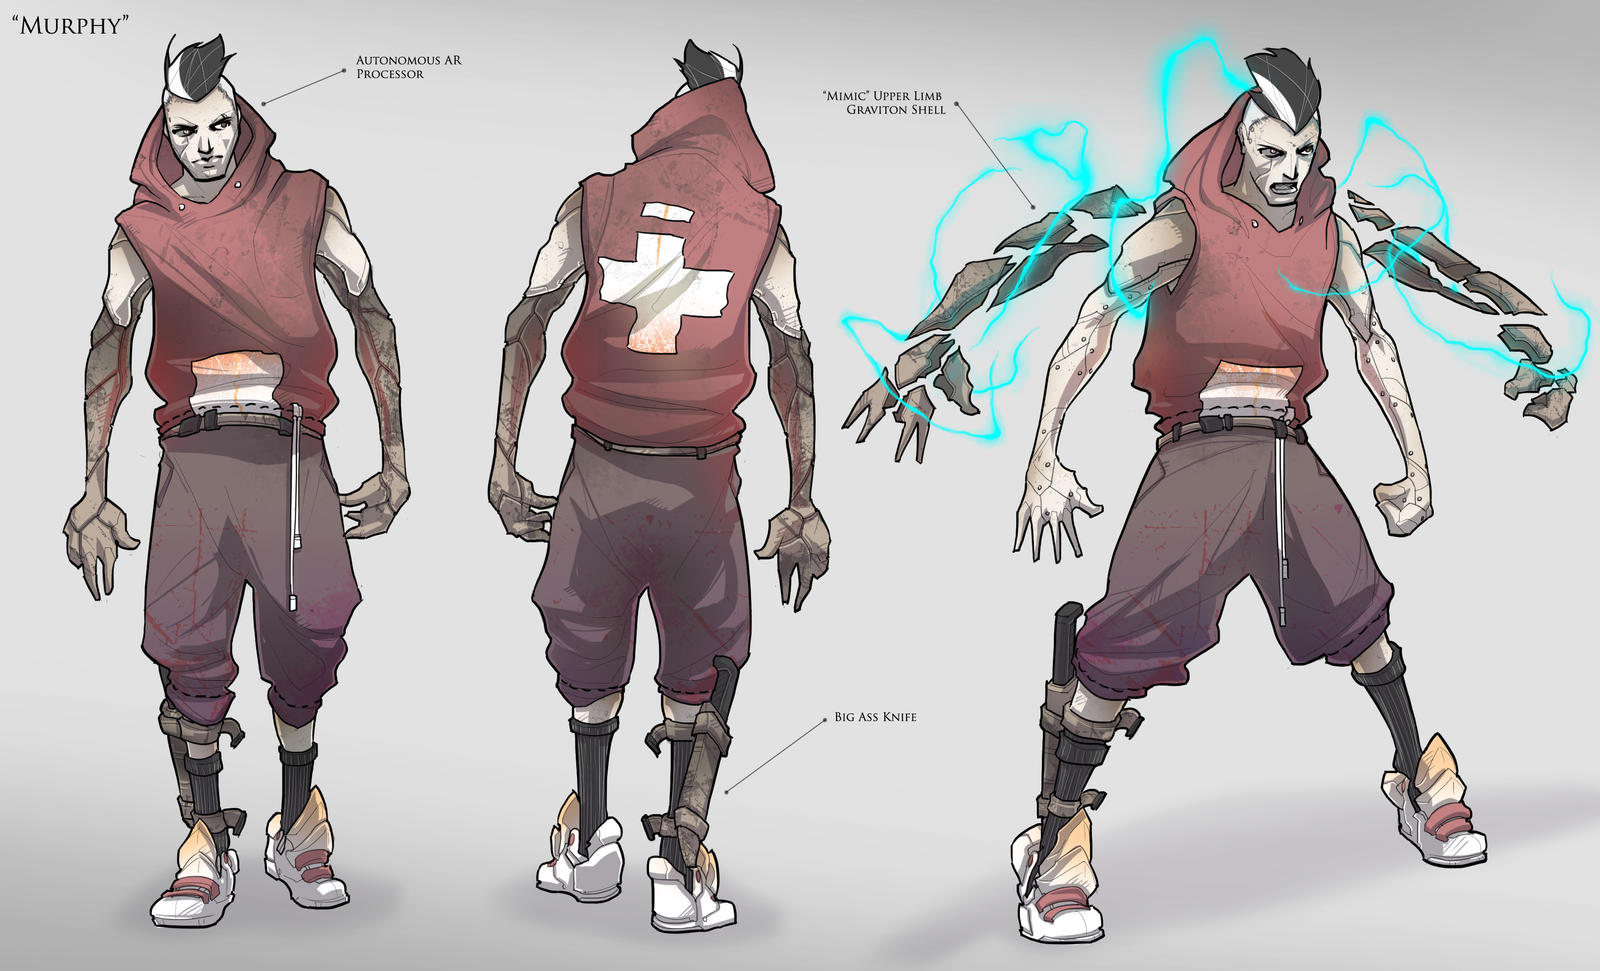 Sci Fi Character Design Tutorial : Character concept murphy by brotherbaston on deviantart